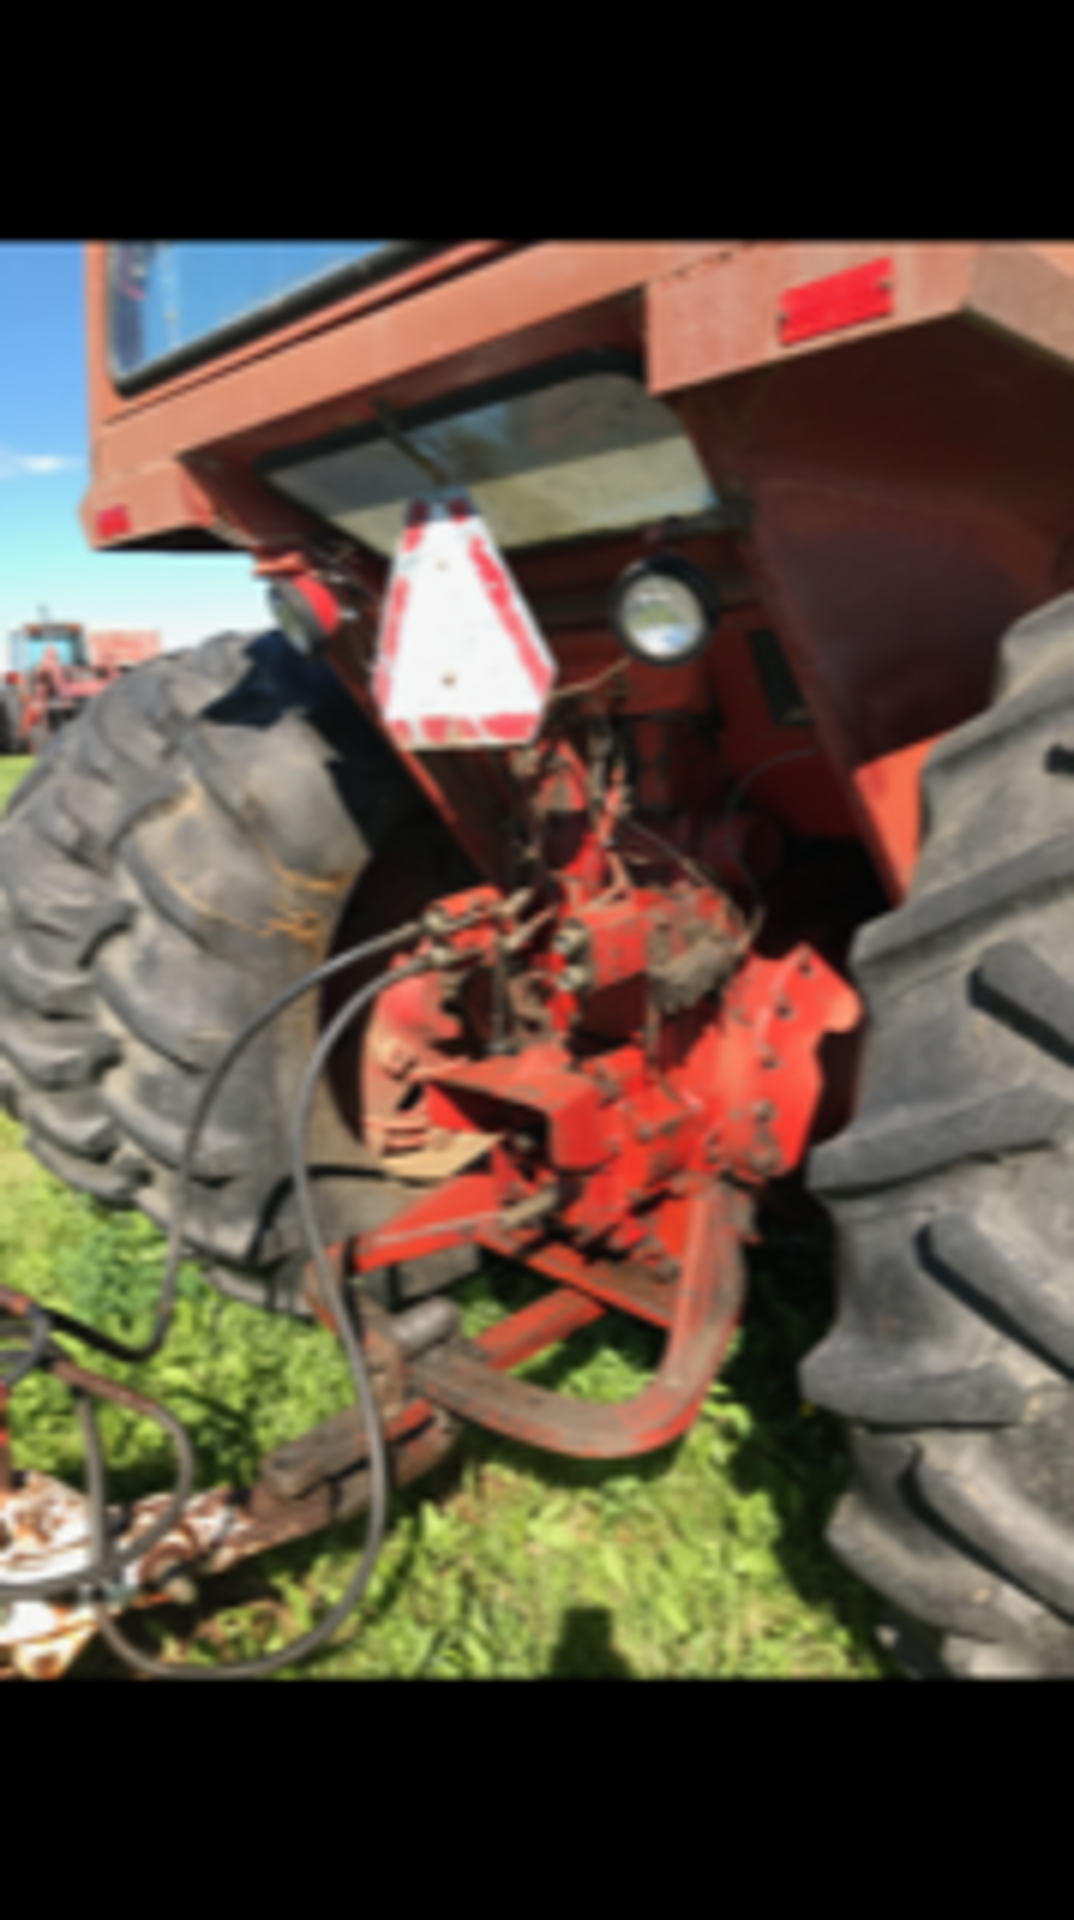 IHC 1466 Tractor, cab,540 - 1000 pto, 6979 hrs. showing sn:2650134U030334 - Image 5 of 5